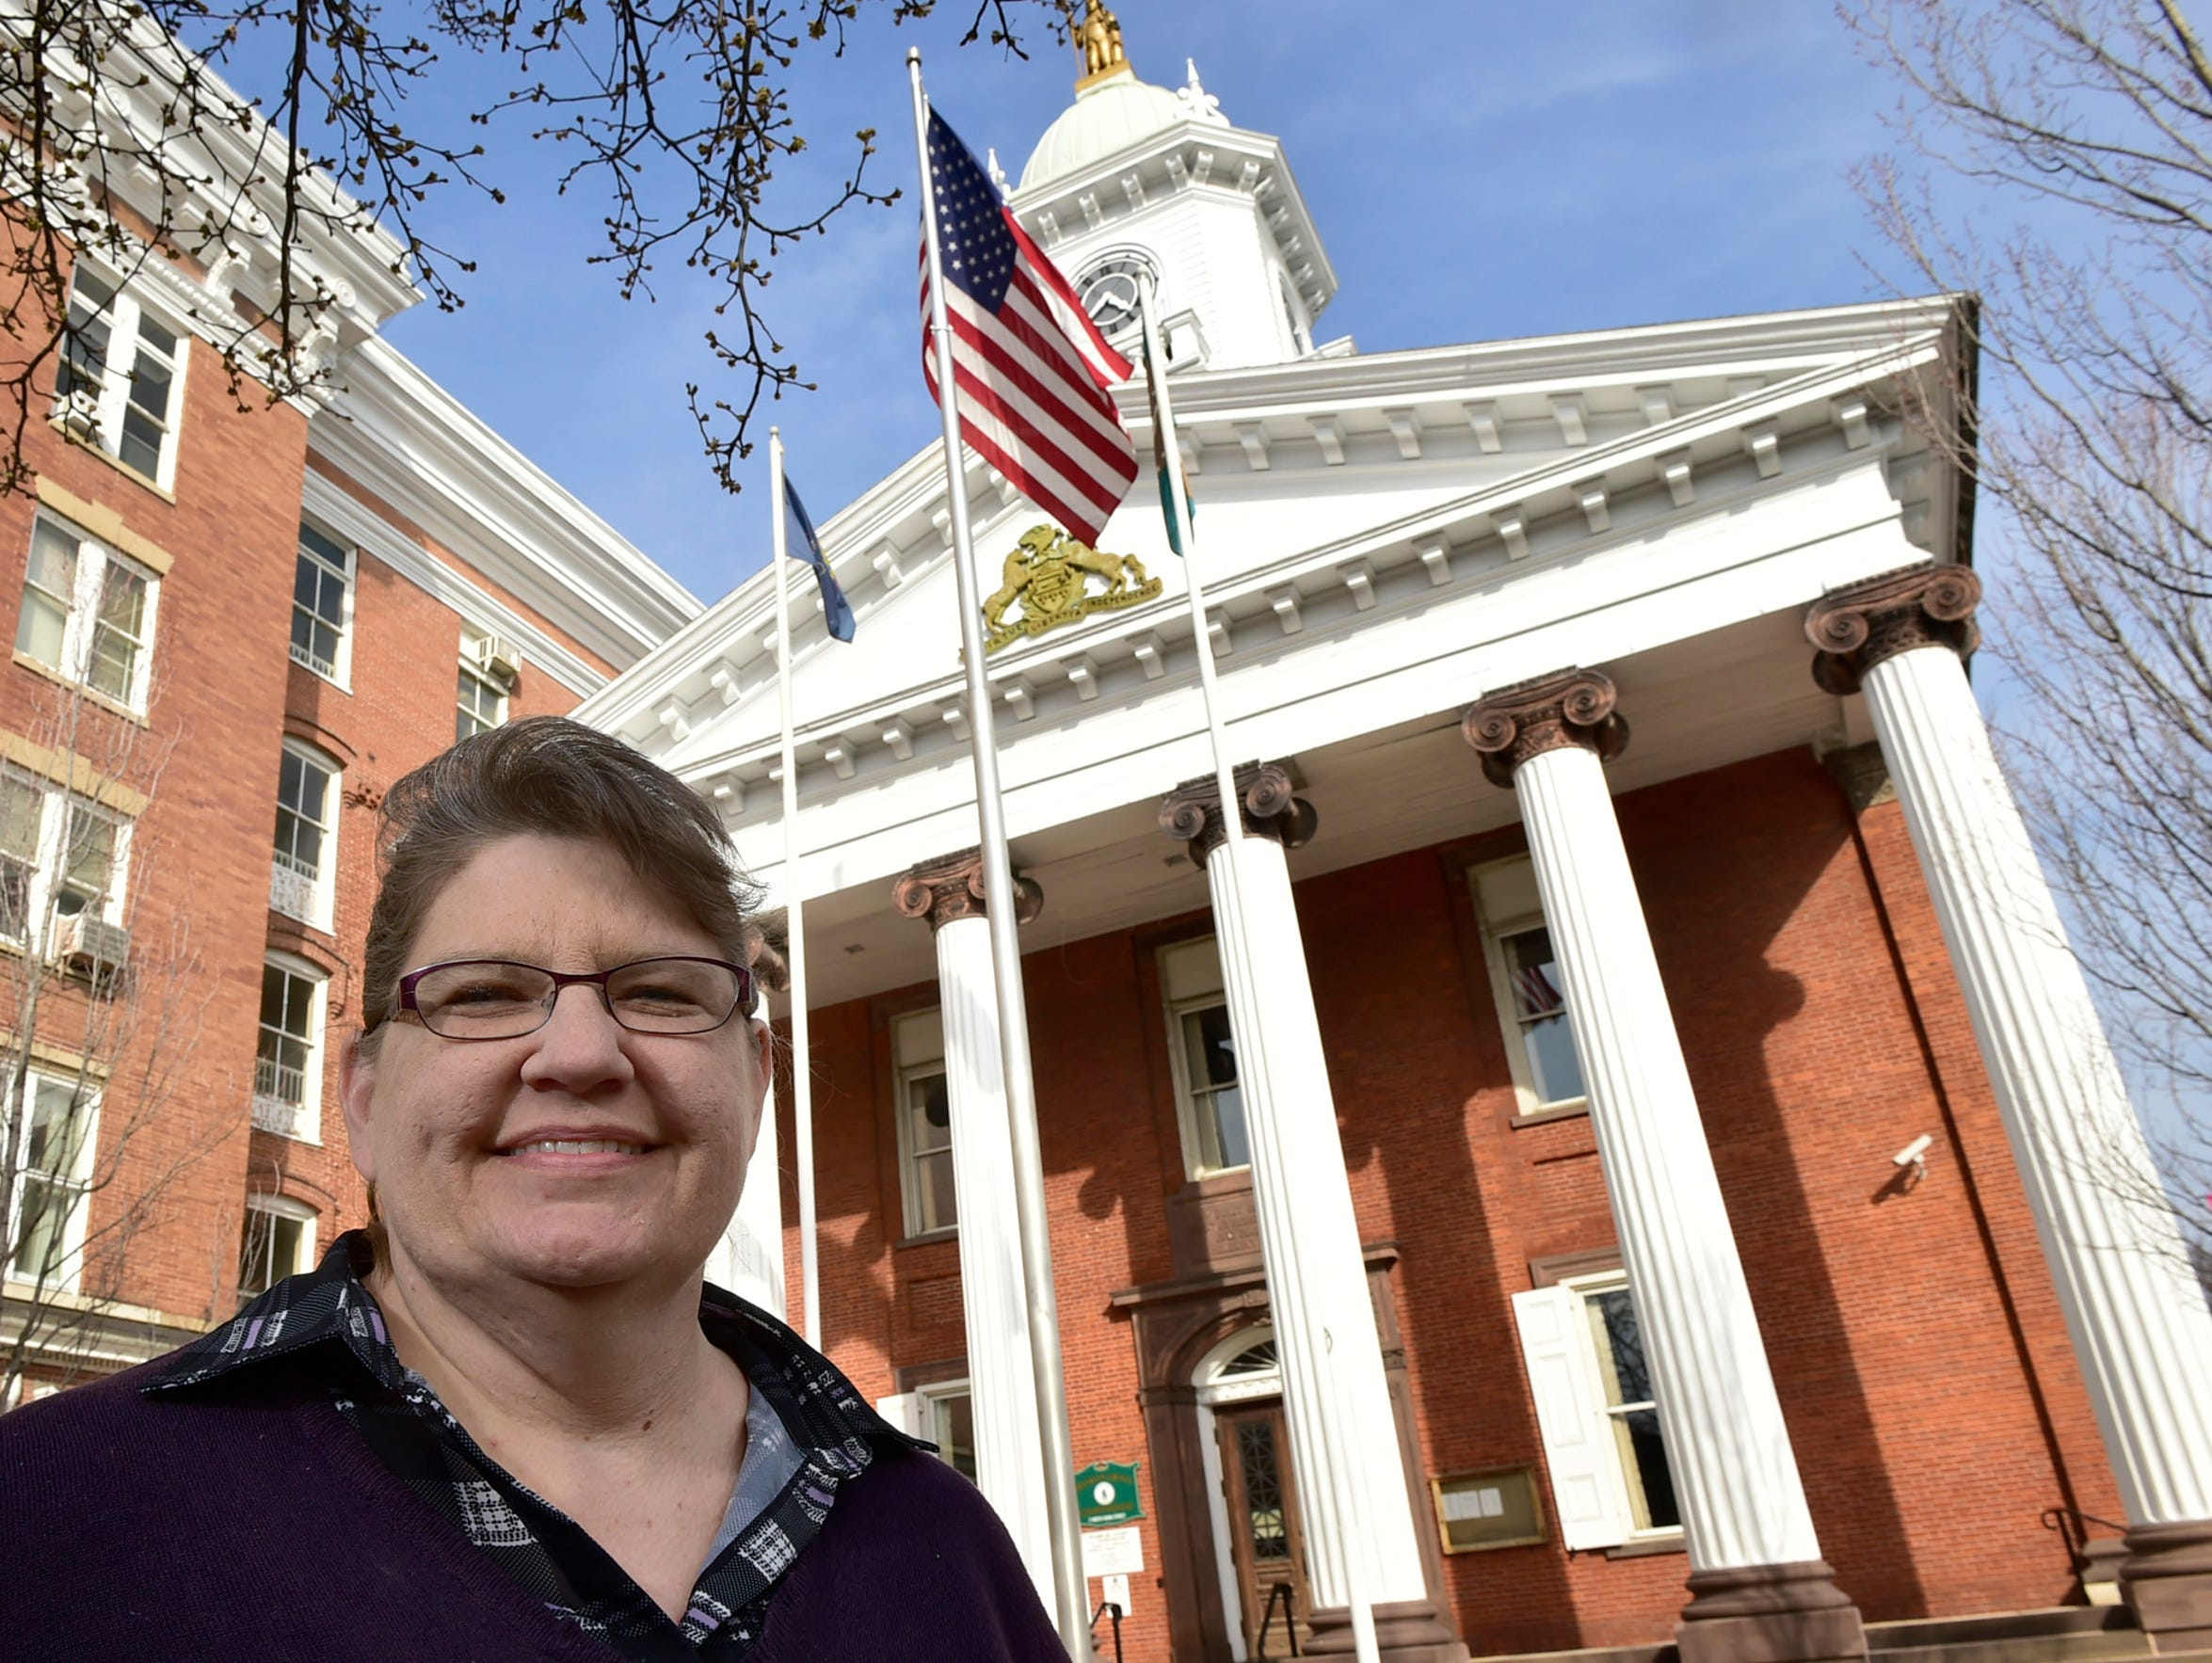 Beth Shupp-George hangs out downtown Chambersburg on